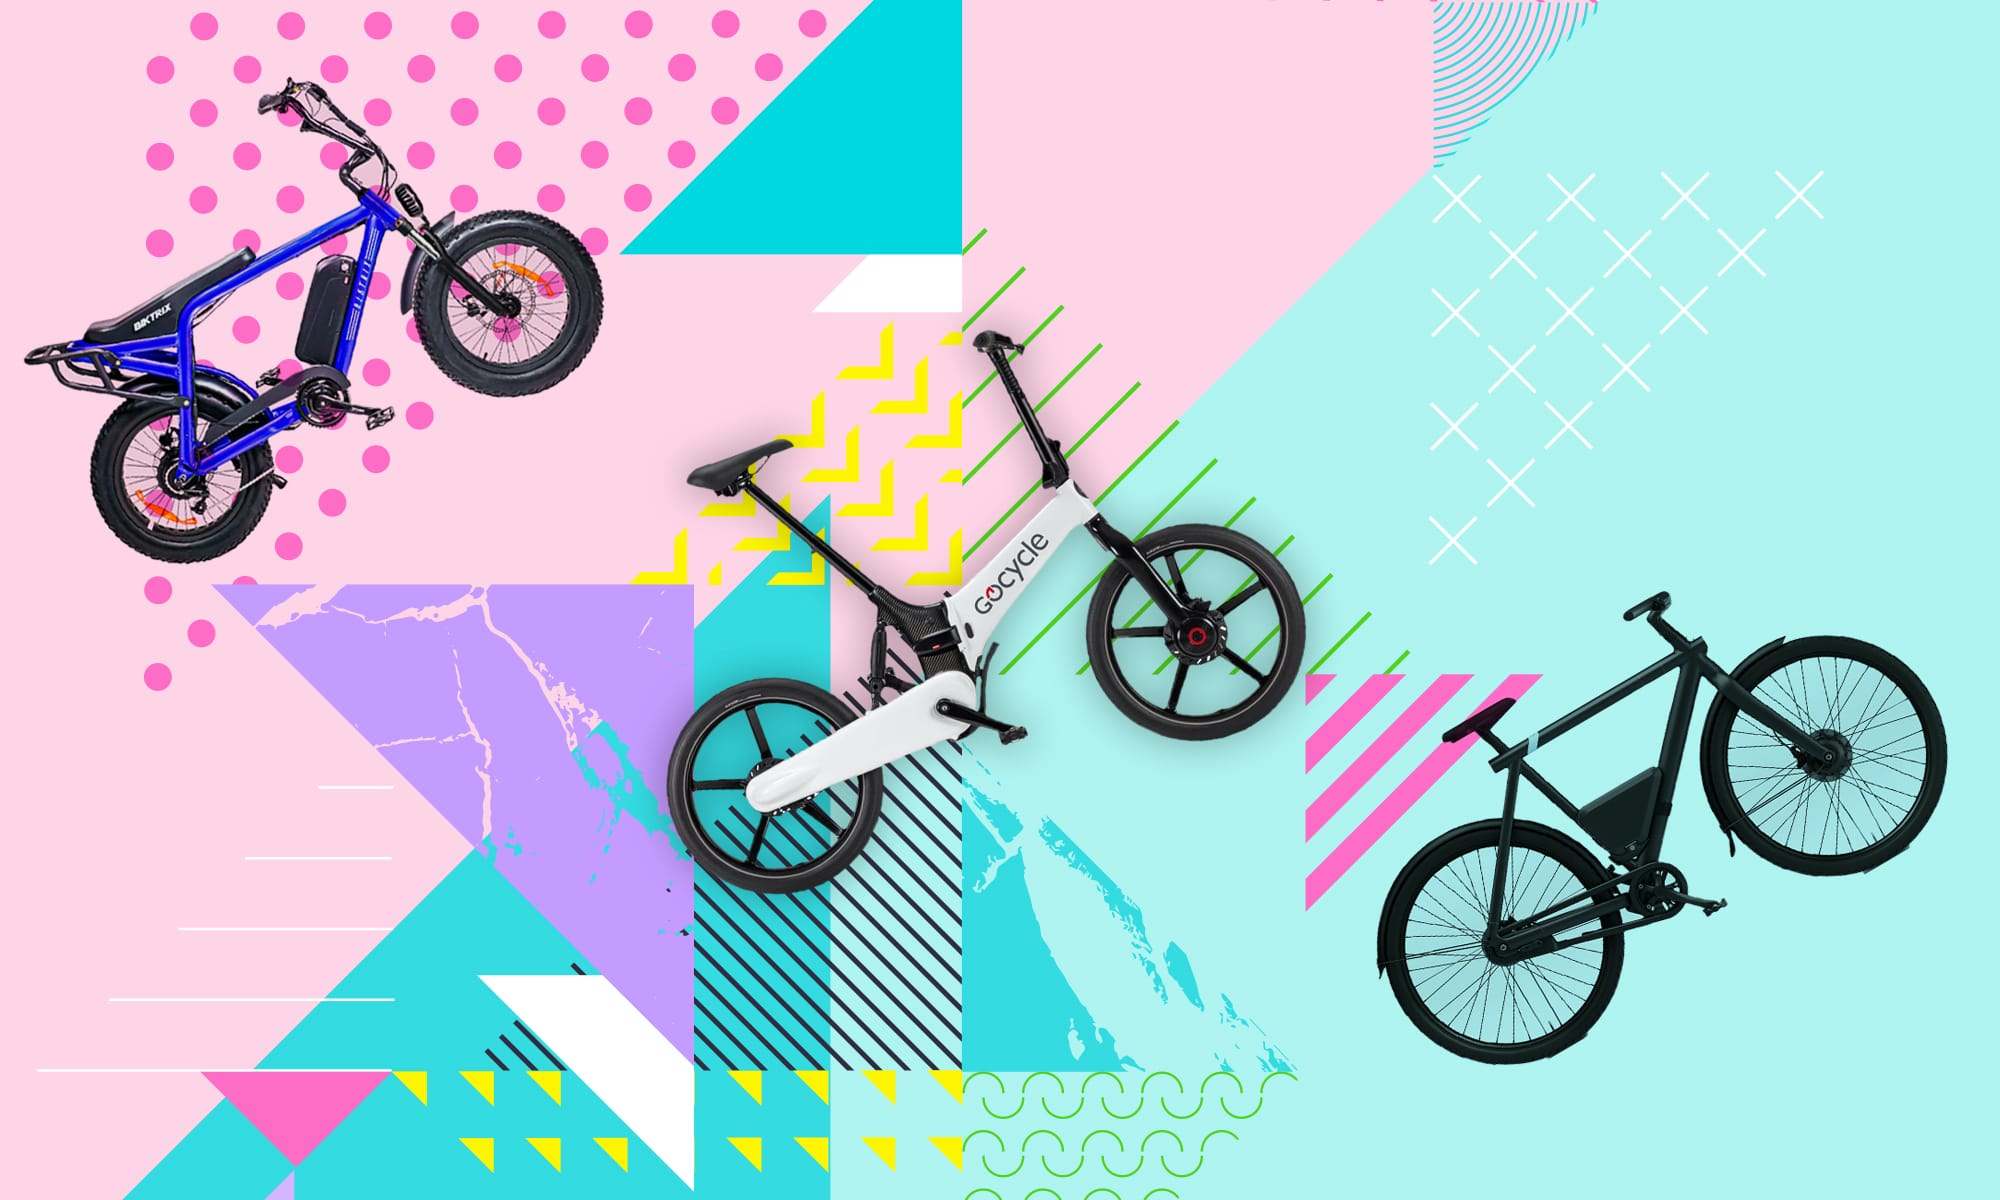 Most innovative eBikes of 2021